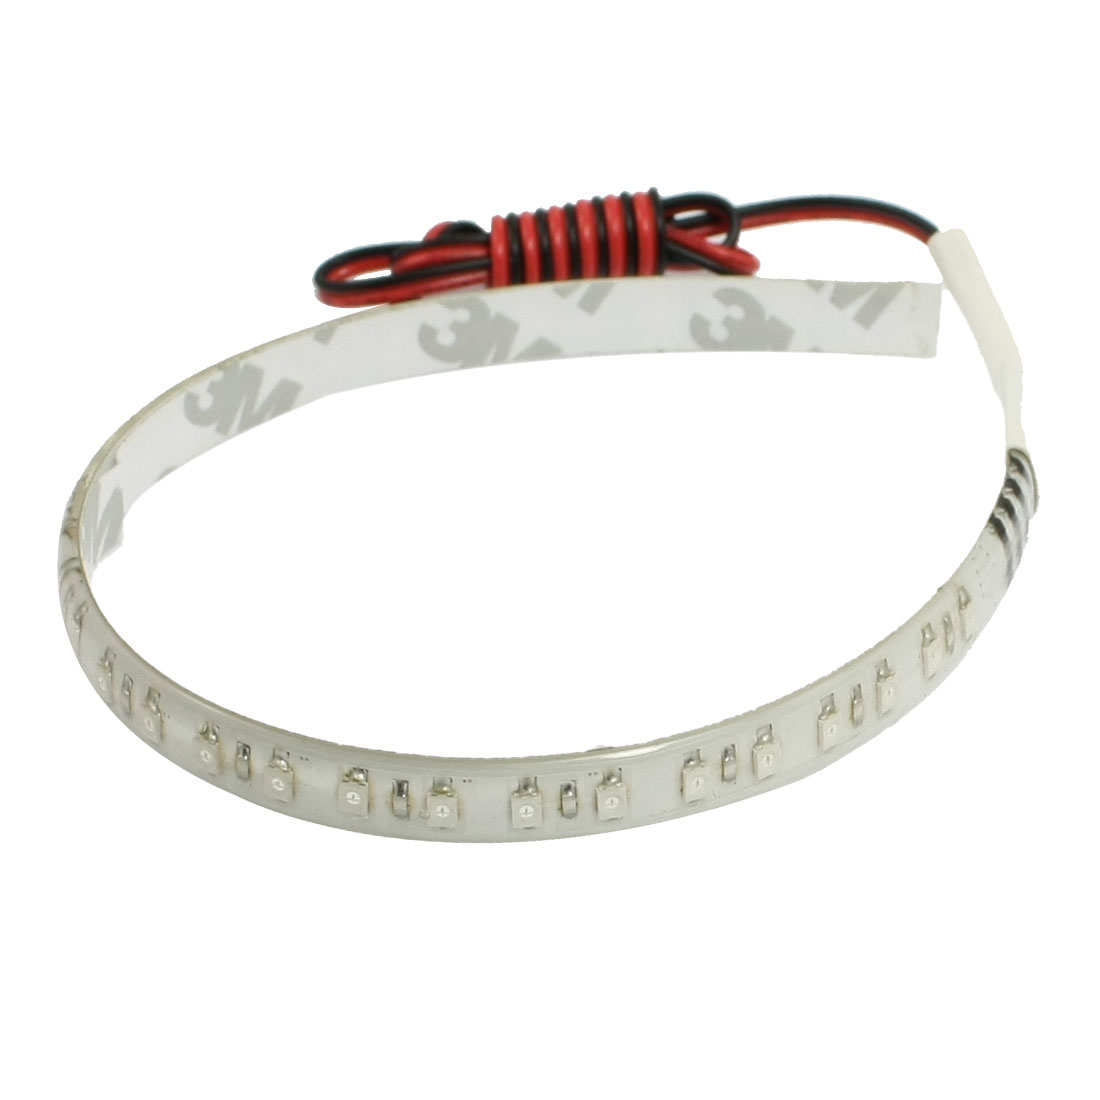 Car Green SMD 32 LED Flexible Strip Bar Light Lamp DC 12V 30cm internal